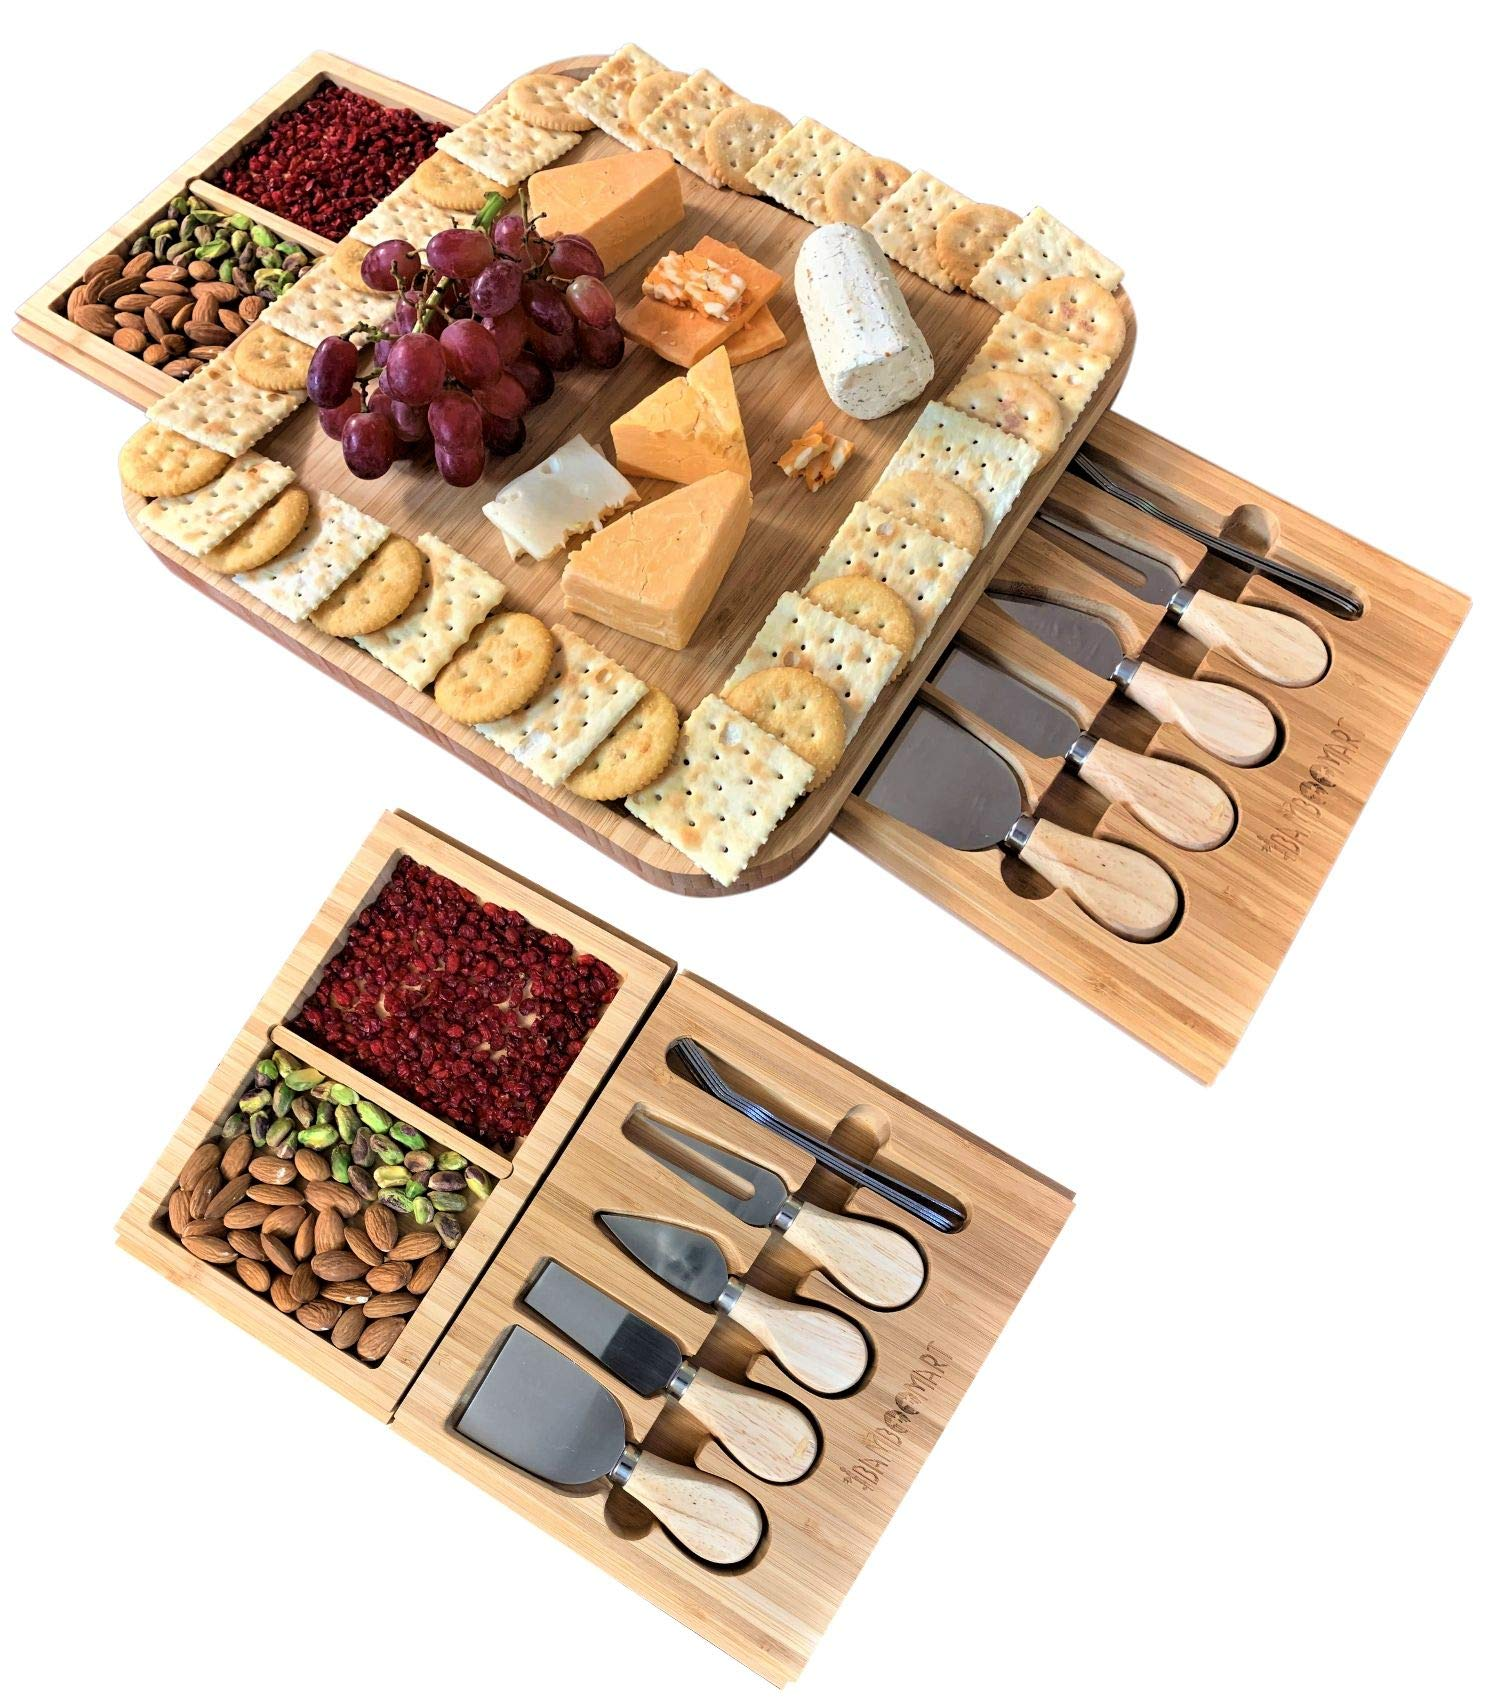 Cheese Board and Knife Set - Wooden Charcuterie - Premium Platter & Serving Meat Tray with Removable Slide-Out Drawers, 4 Knife, 4 Fork, Perfect for Birthday, Housewarming & Wedding Gifts by iBambooMart